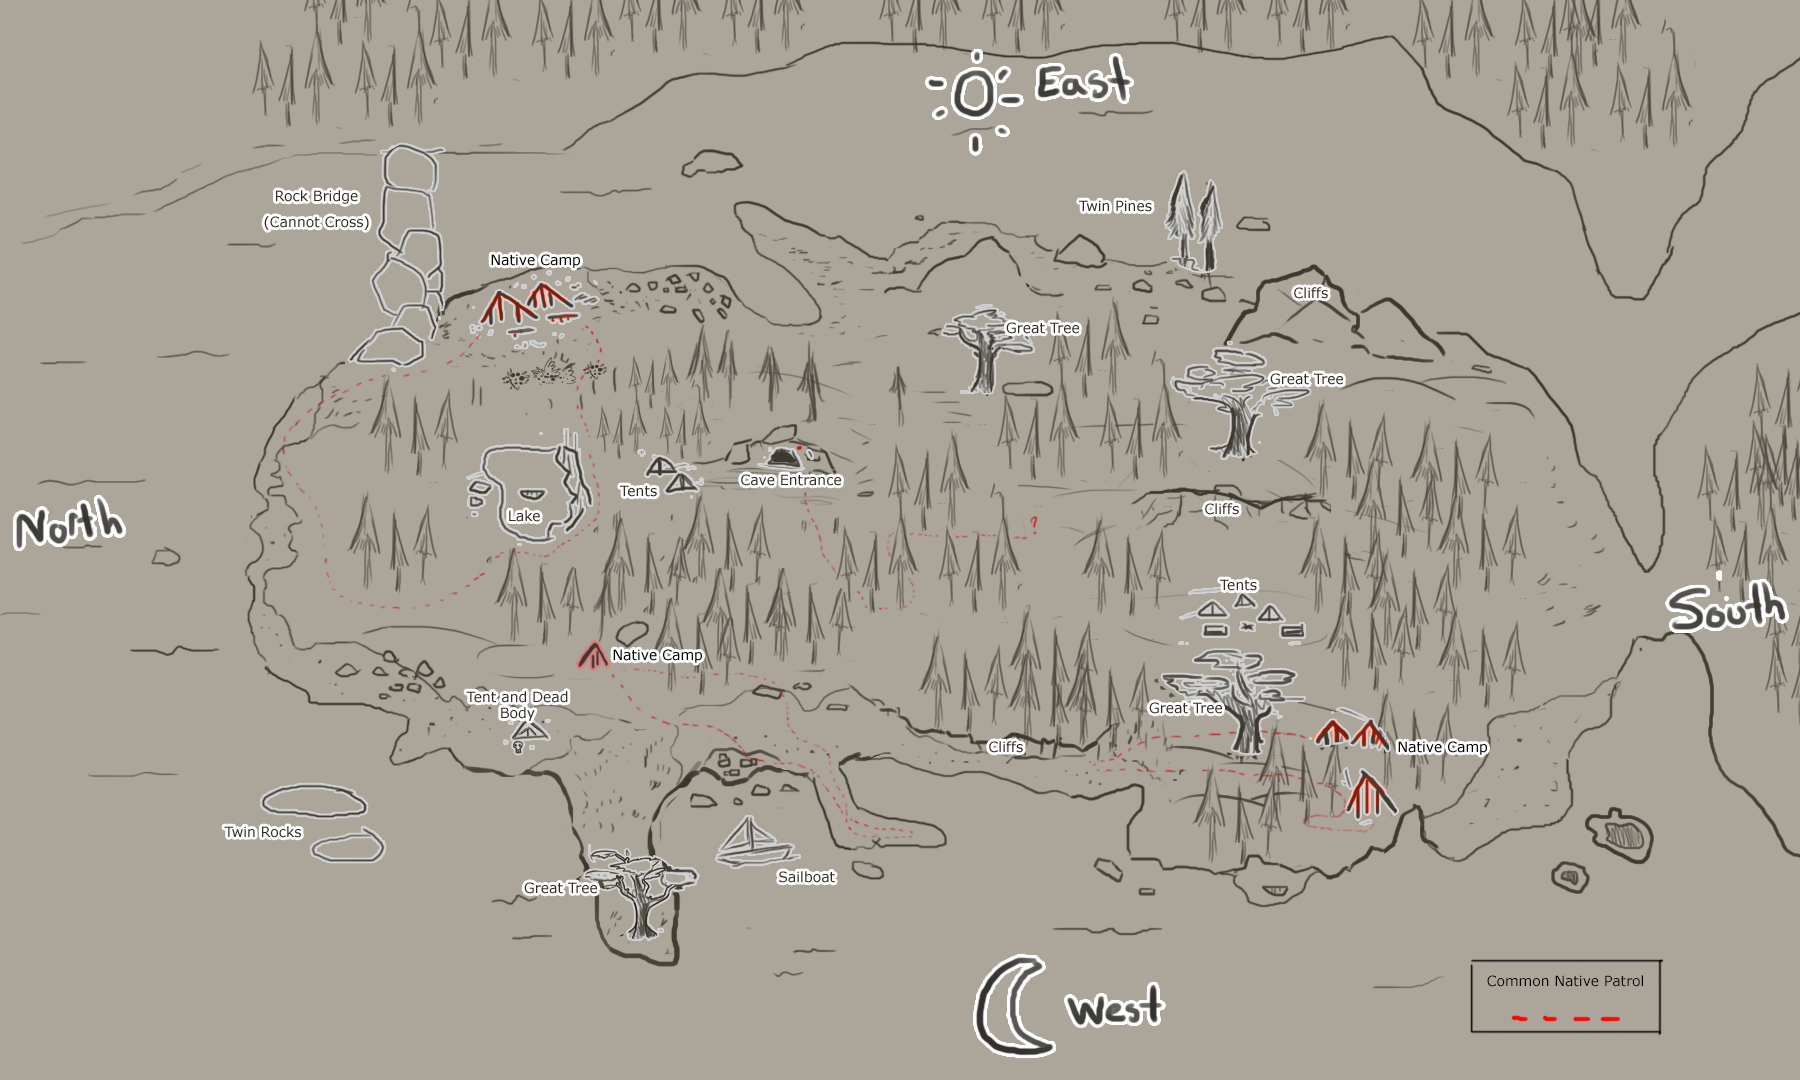 Image  Map Of Islandpng  The Forest Wiki  FANDOM powered by Wikia